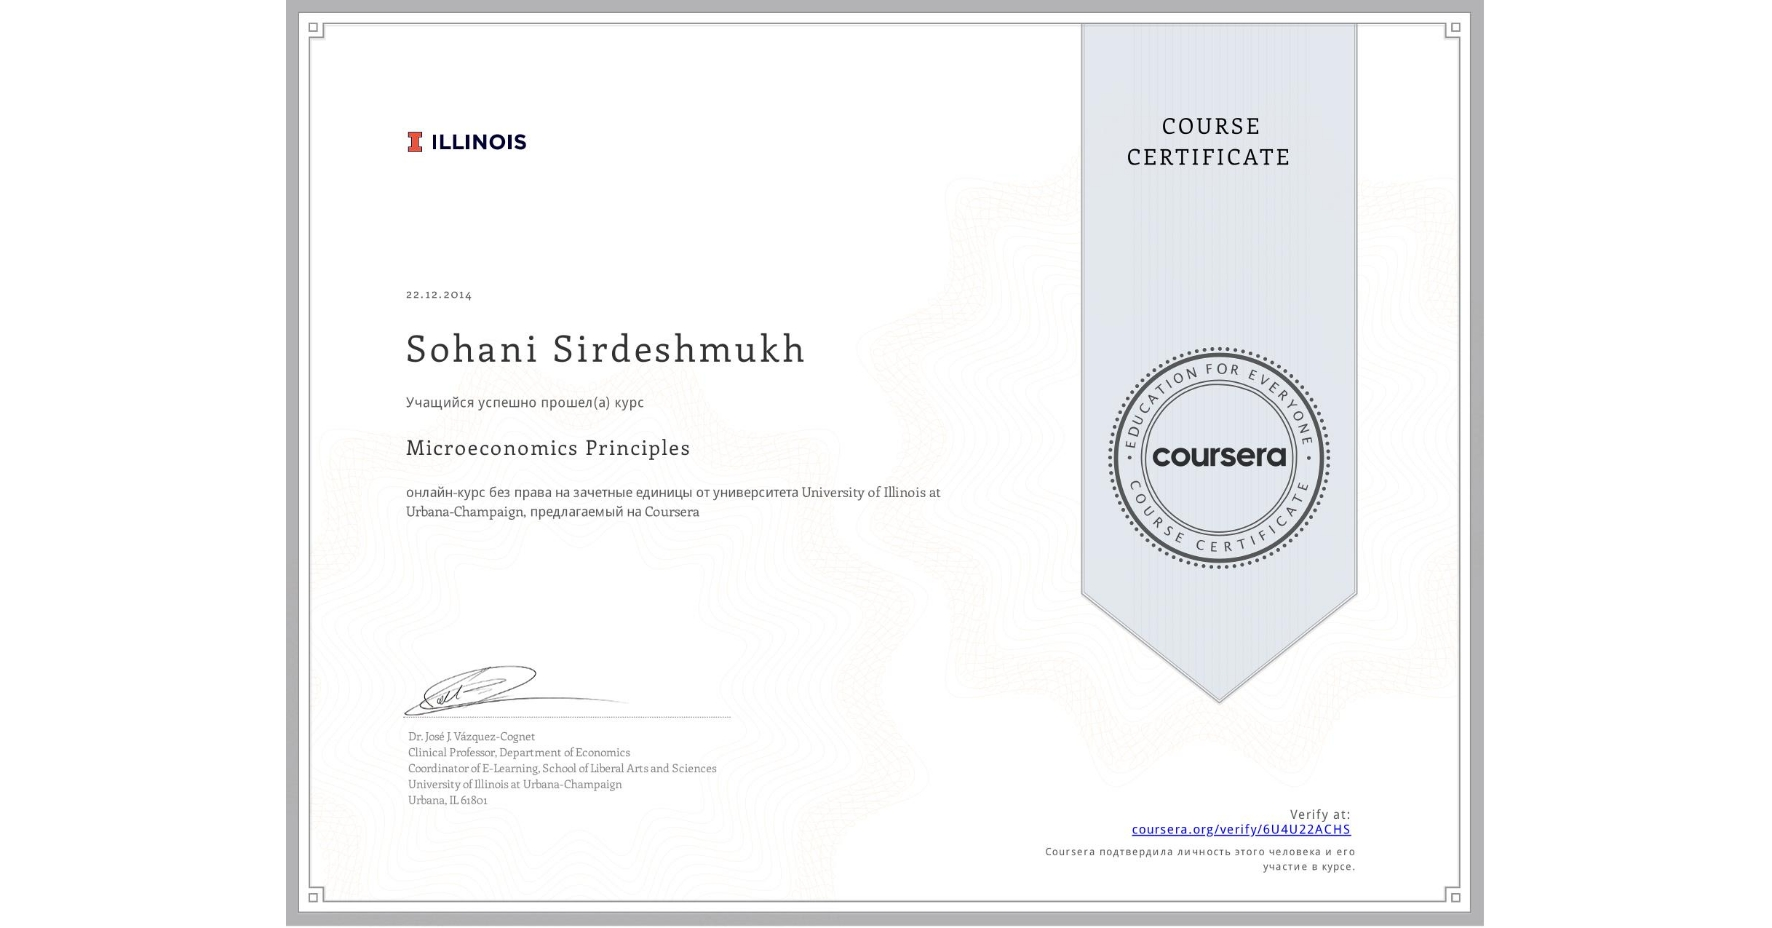 View certificate for Sohani Sirdeshmukh, Microeconomics Principles, an online non-credit course authorized by University of Illinois at Urbana-Champaign and offered through Coursera